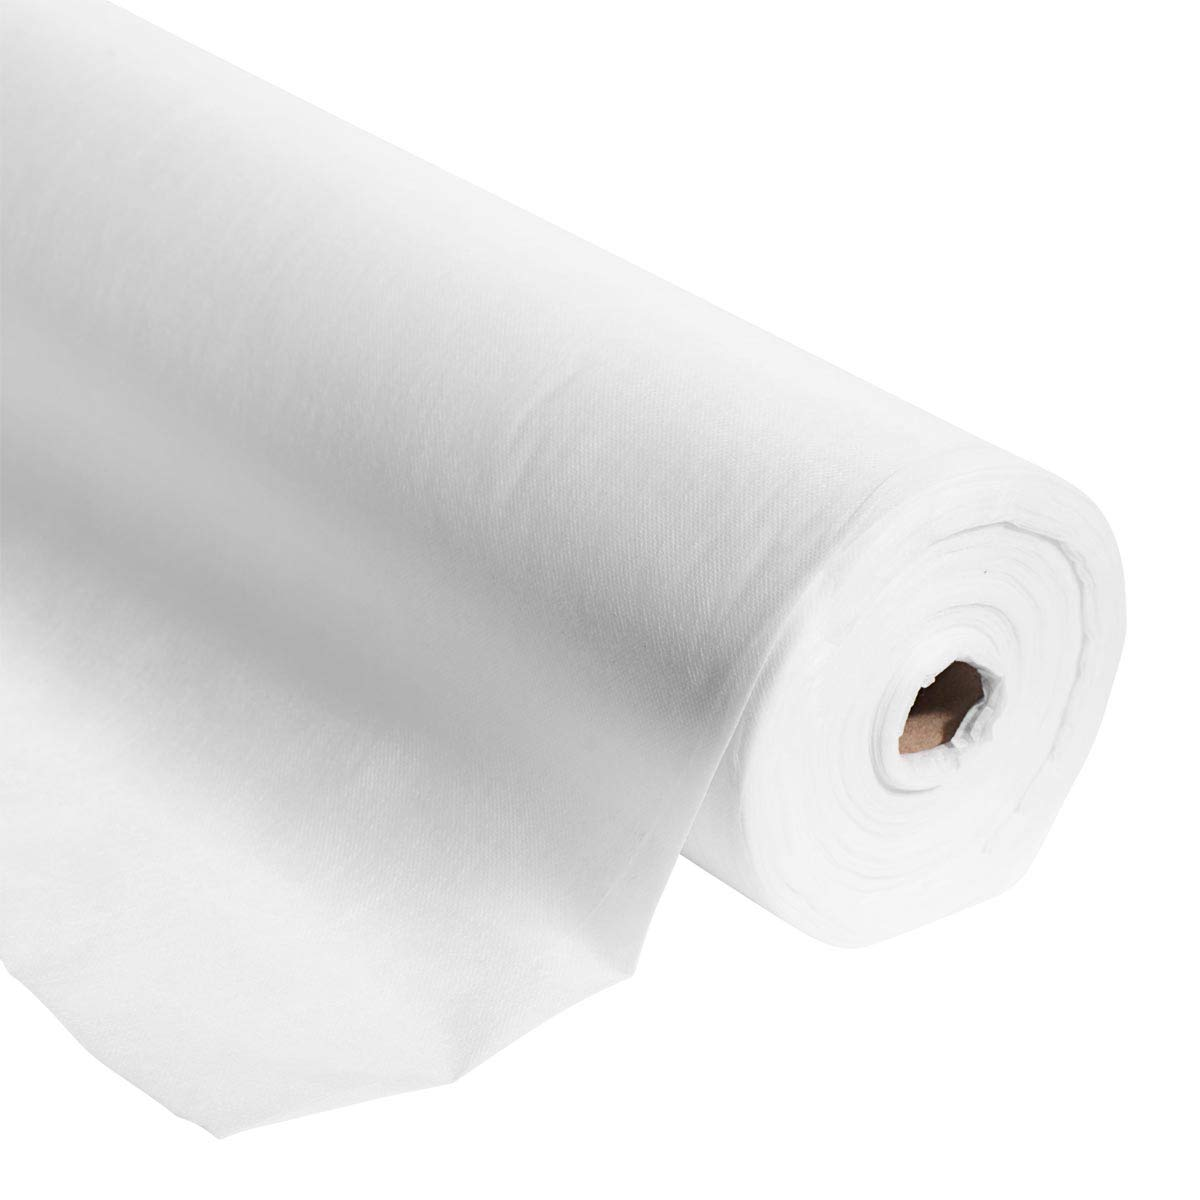 White Gossamer Decorating Material, 59 Inches x 100 Yards Long, Decorating Prom, Homecoming, Wedding Ceilings and Walls